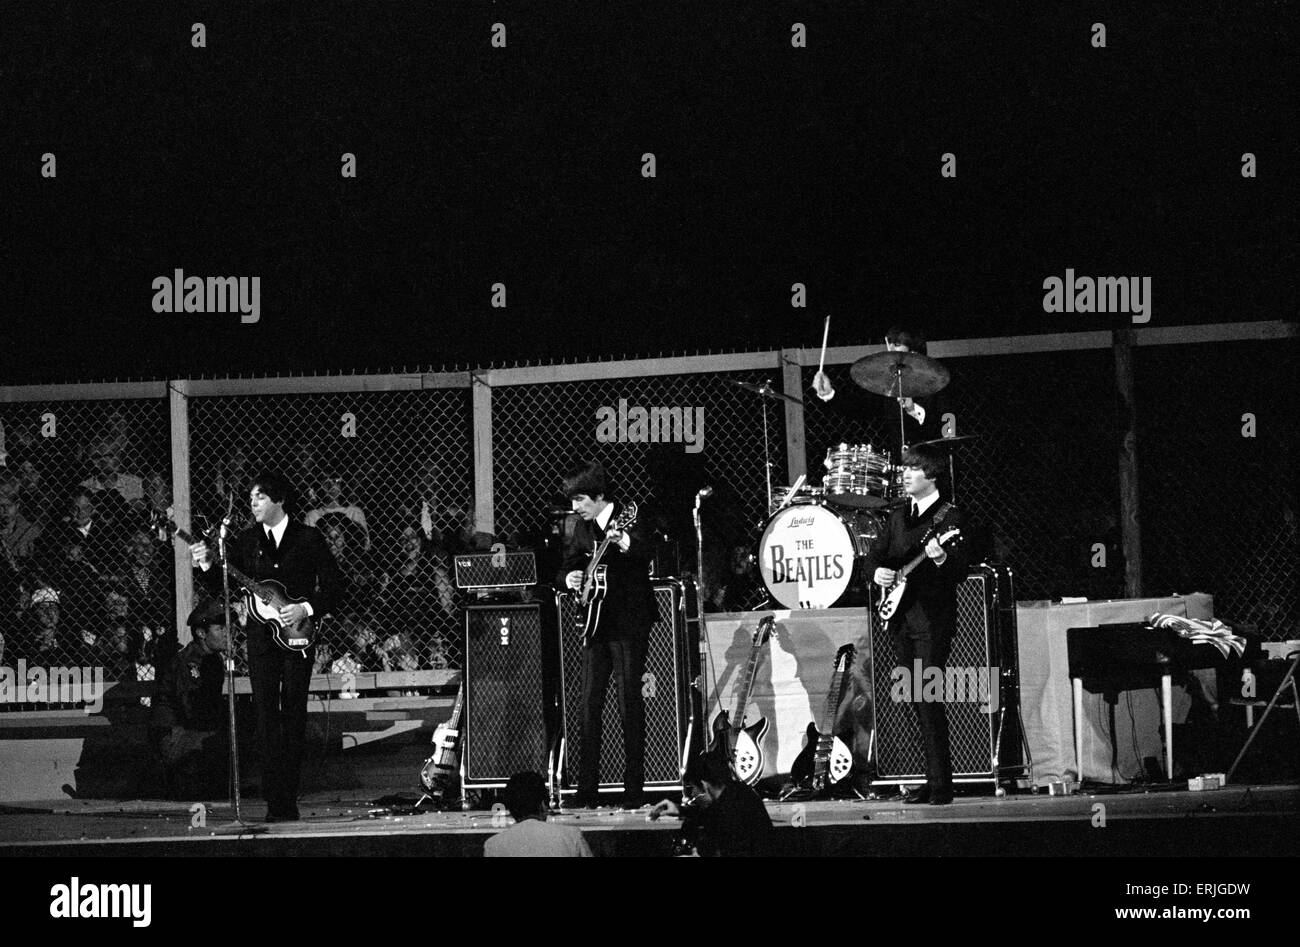 British Pop Group The Beatles Performing On Stage At Cow Palace In San Francisco California During Their North American Tour